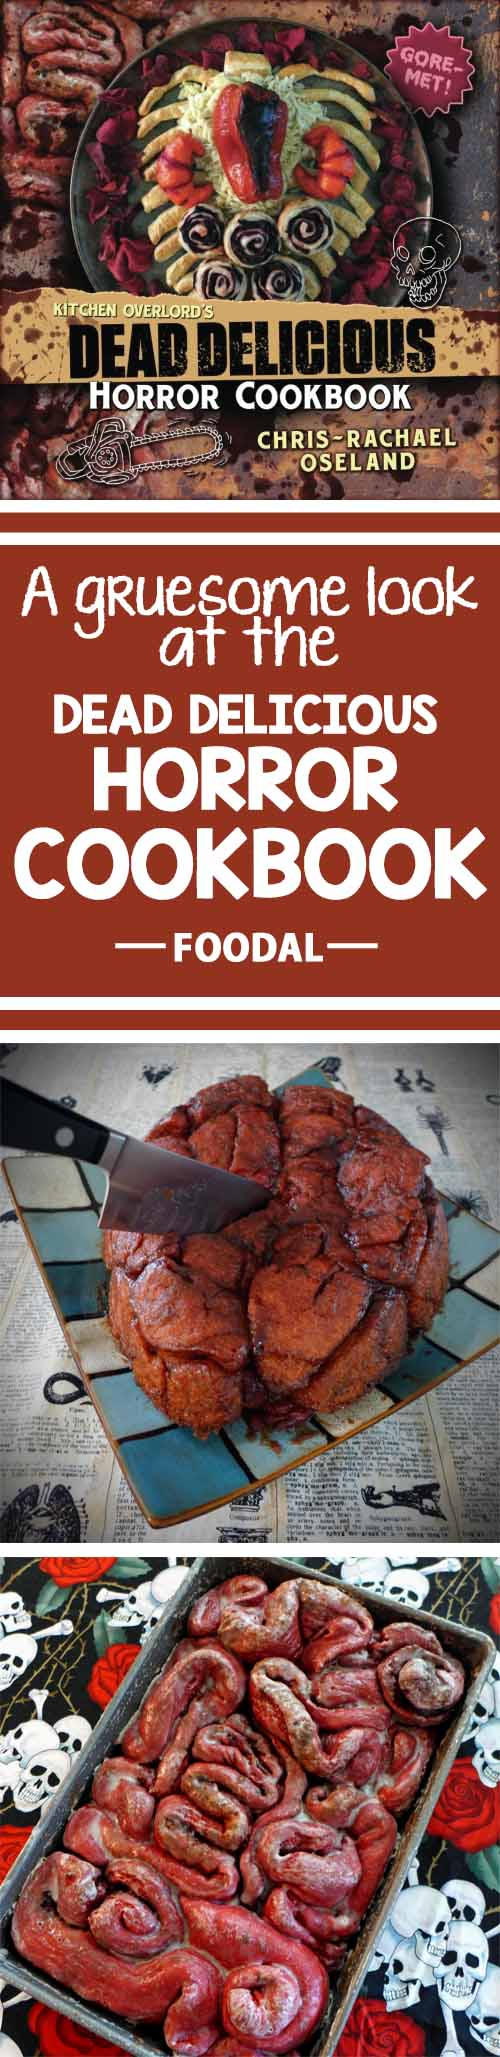 Looking to take your Halloween cooking game to the next level with gruesome treats that are sure to creep out your guests? You'll love this book! Check out our review and get Chris-Rachel Oseland's recipe for Beet Monkey Bread Brains now on Foodal. http://foodal.com/kitchen/general-kitchenware/recipe-books/dead-delicious-horror-cookbook/